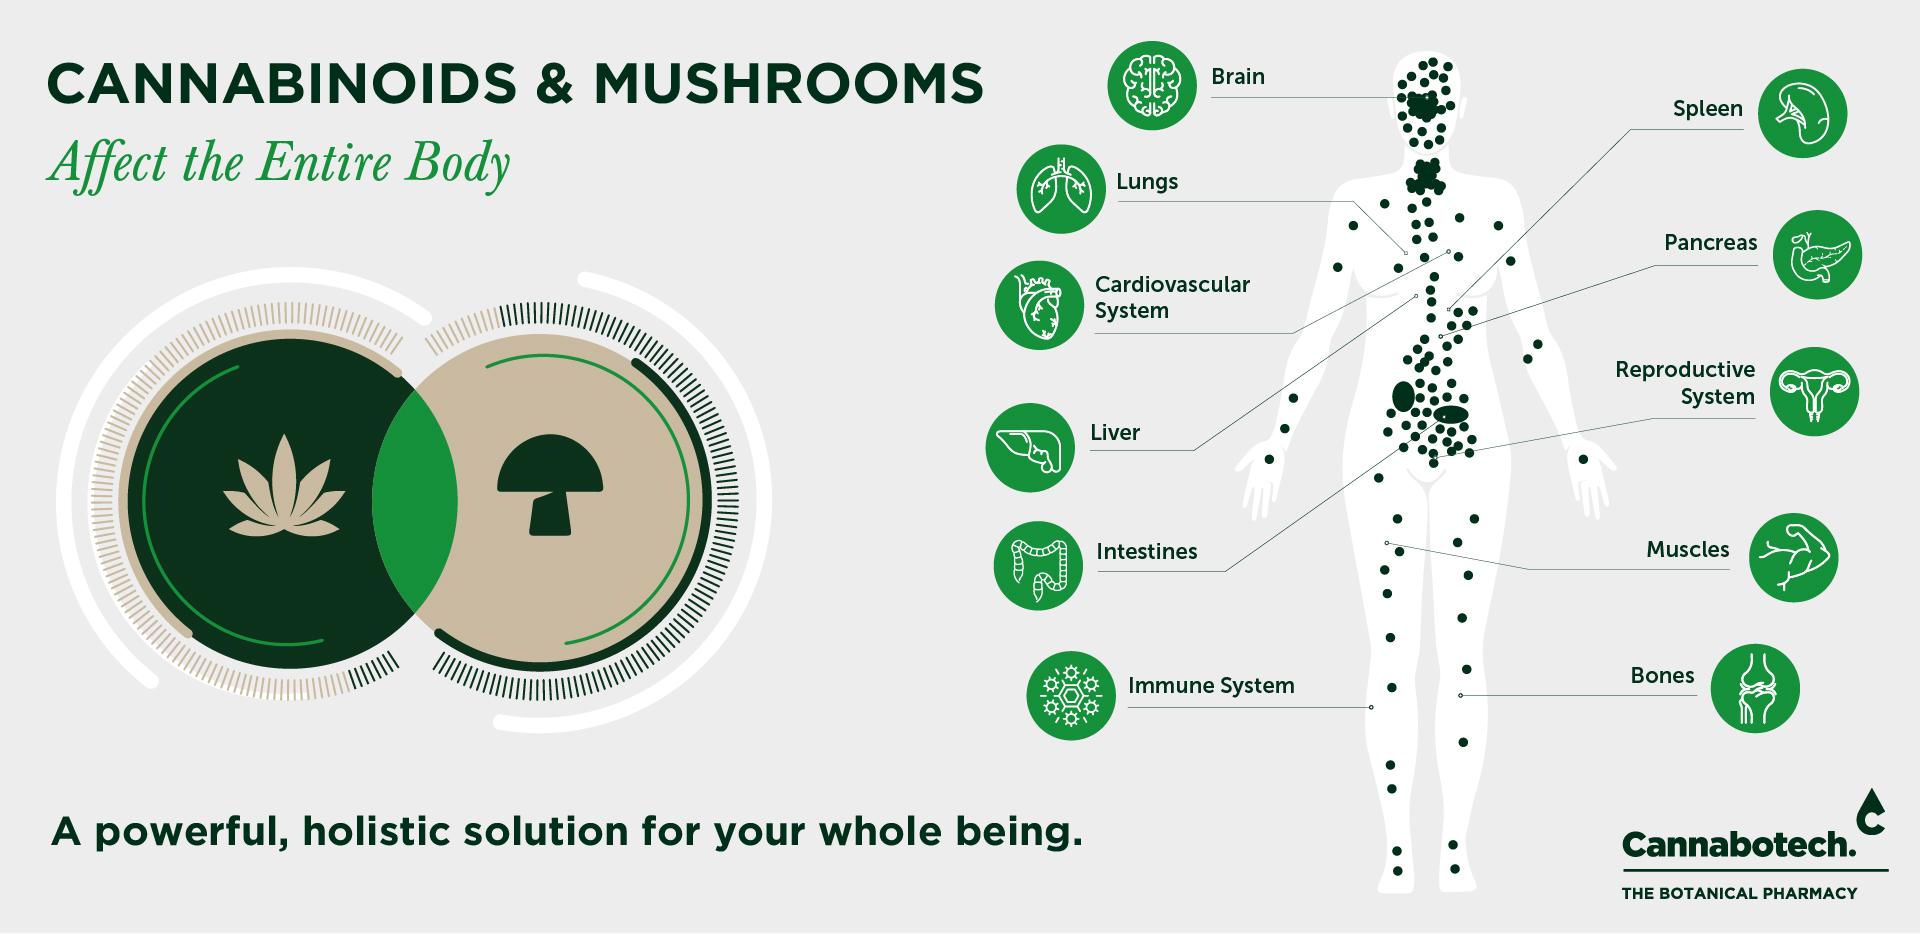 mushrooms and CBD infographic bodily systems icons